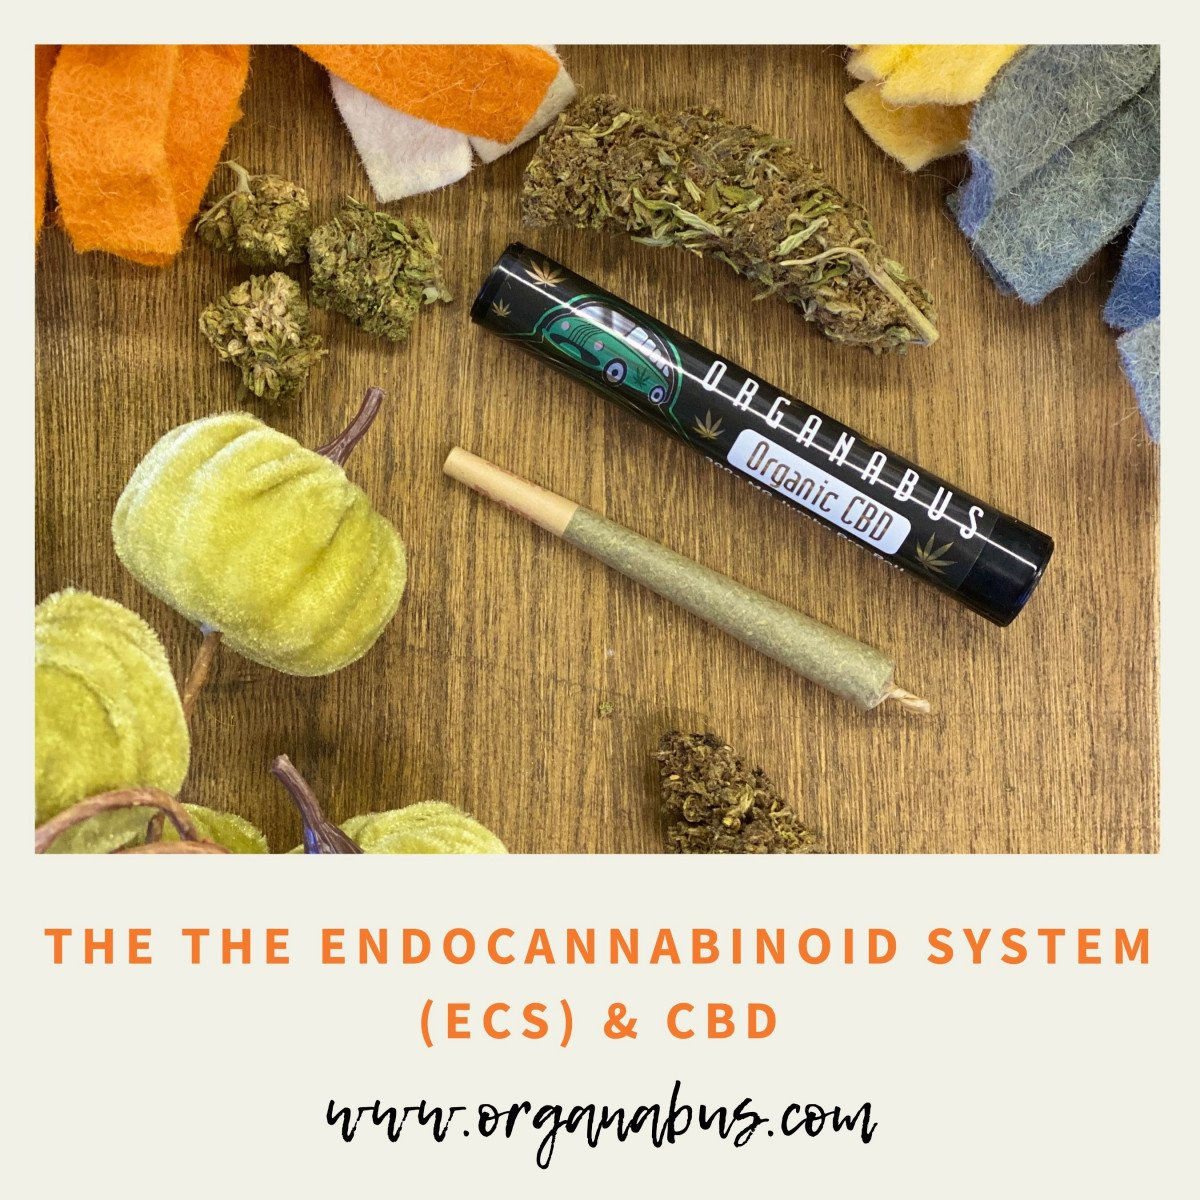 The Endocannabinoid System: Unlocking the Mystery, Vol. I